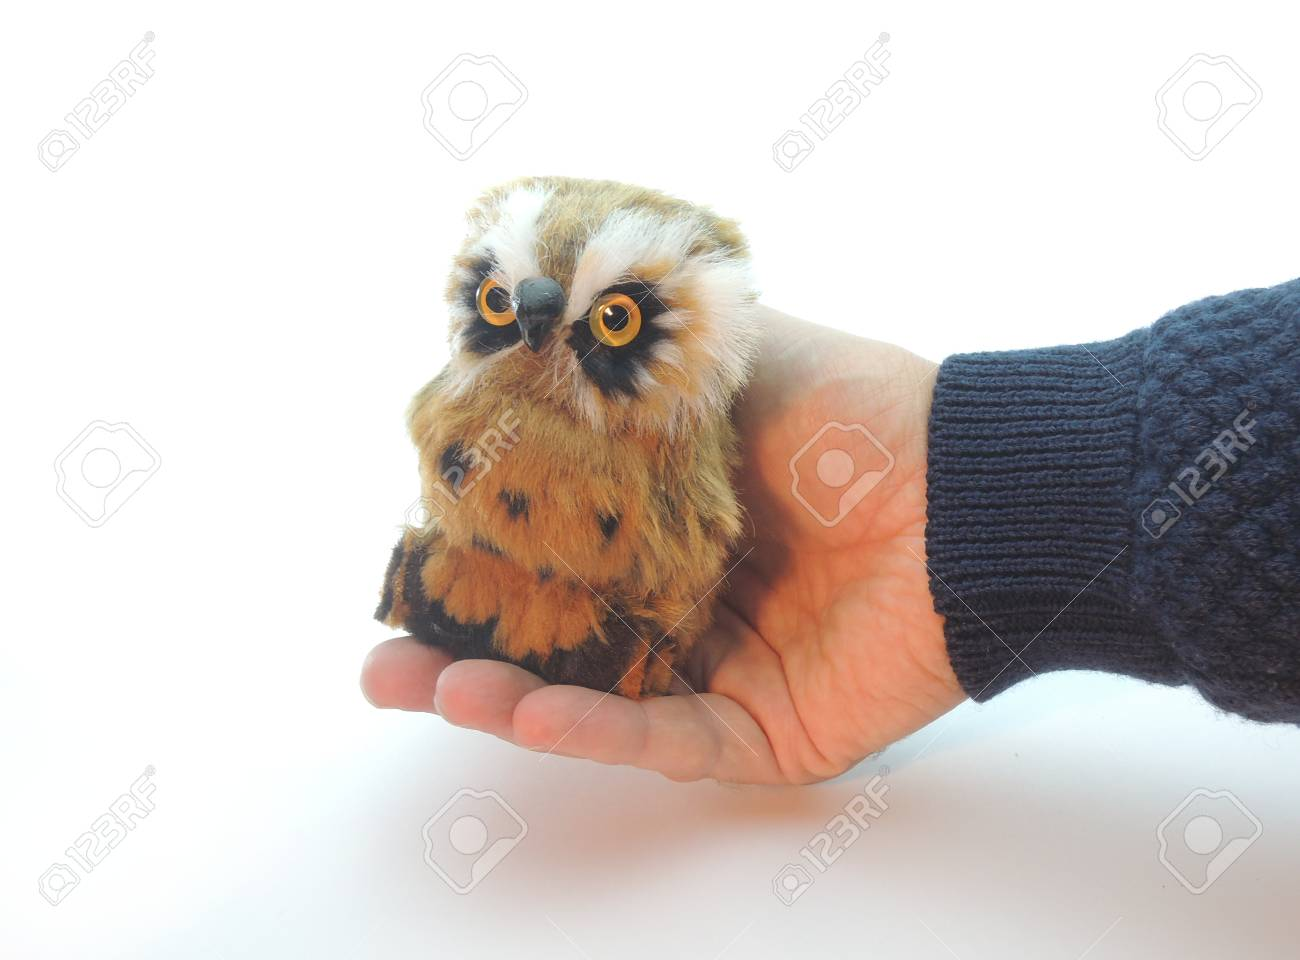 Knowledge Transfer Symbolized By Handing Over An Owl A Symbol